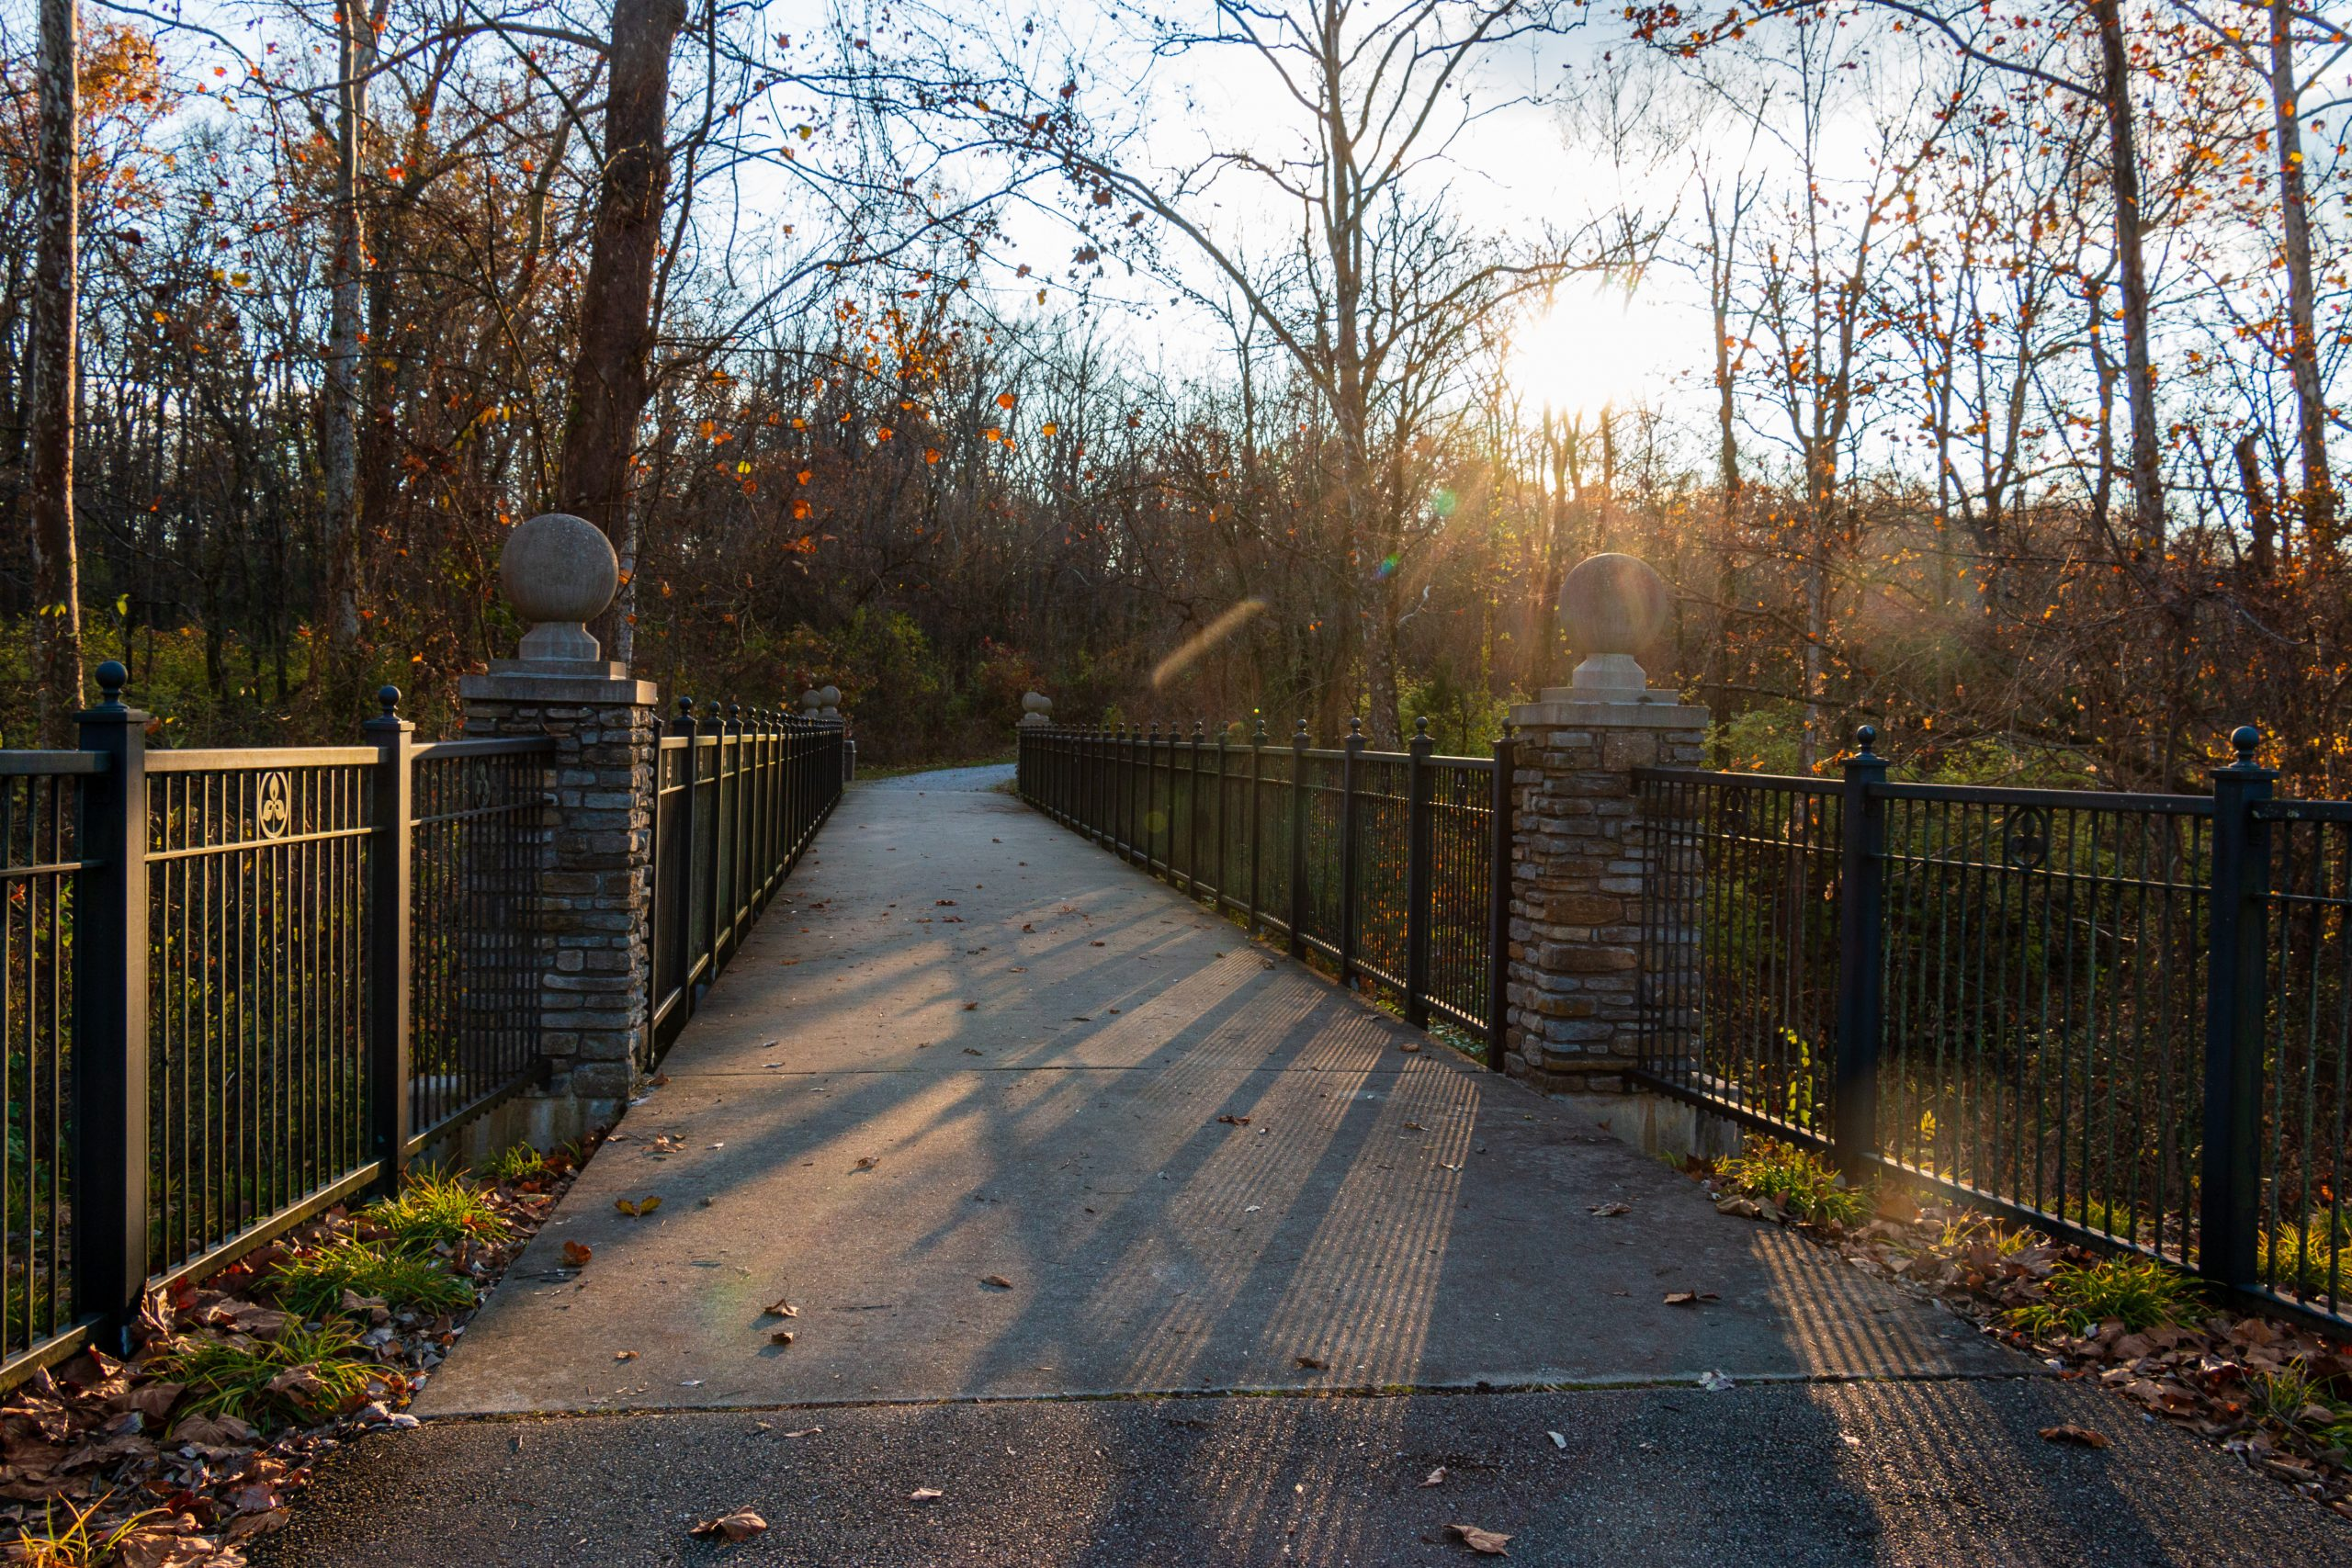 A stone bridge allows guests to cross a creek on the Garden Loop Trail at Glenwood Gardens.